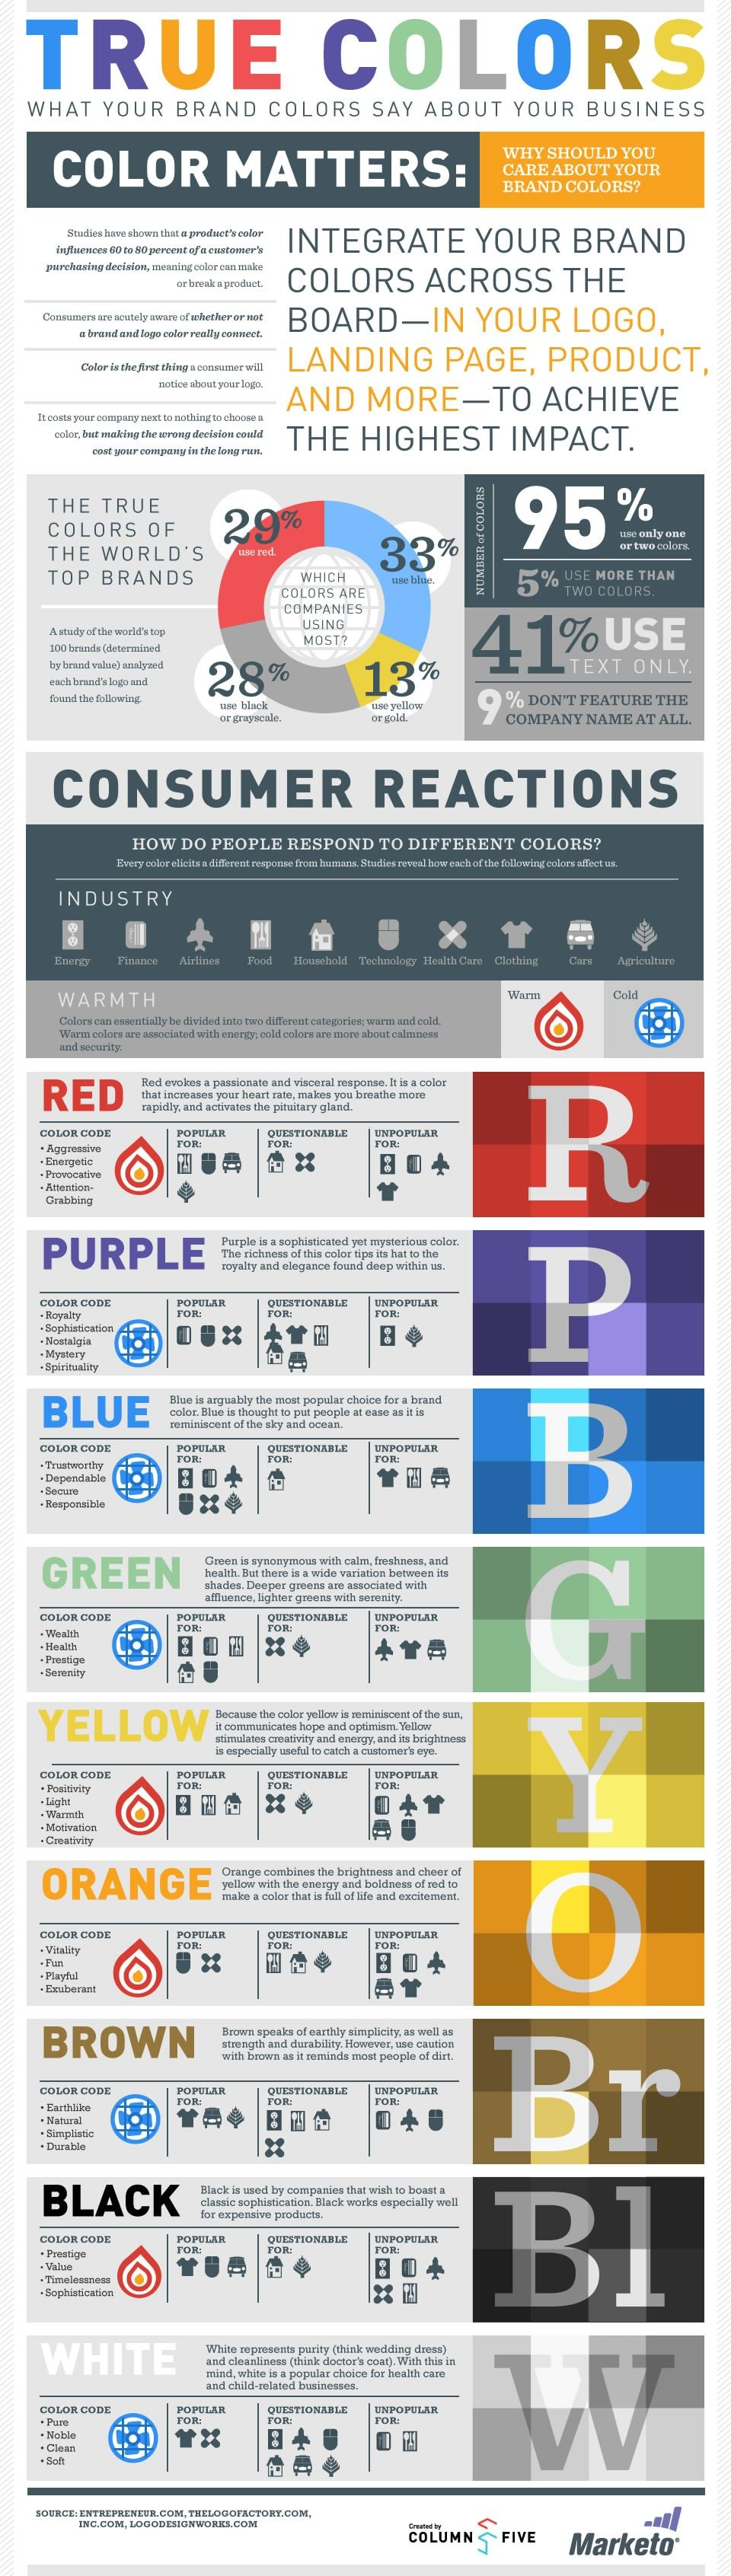 What Your Brand Colors Say About Your Business (Infographic)